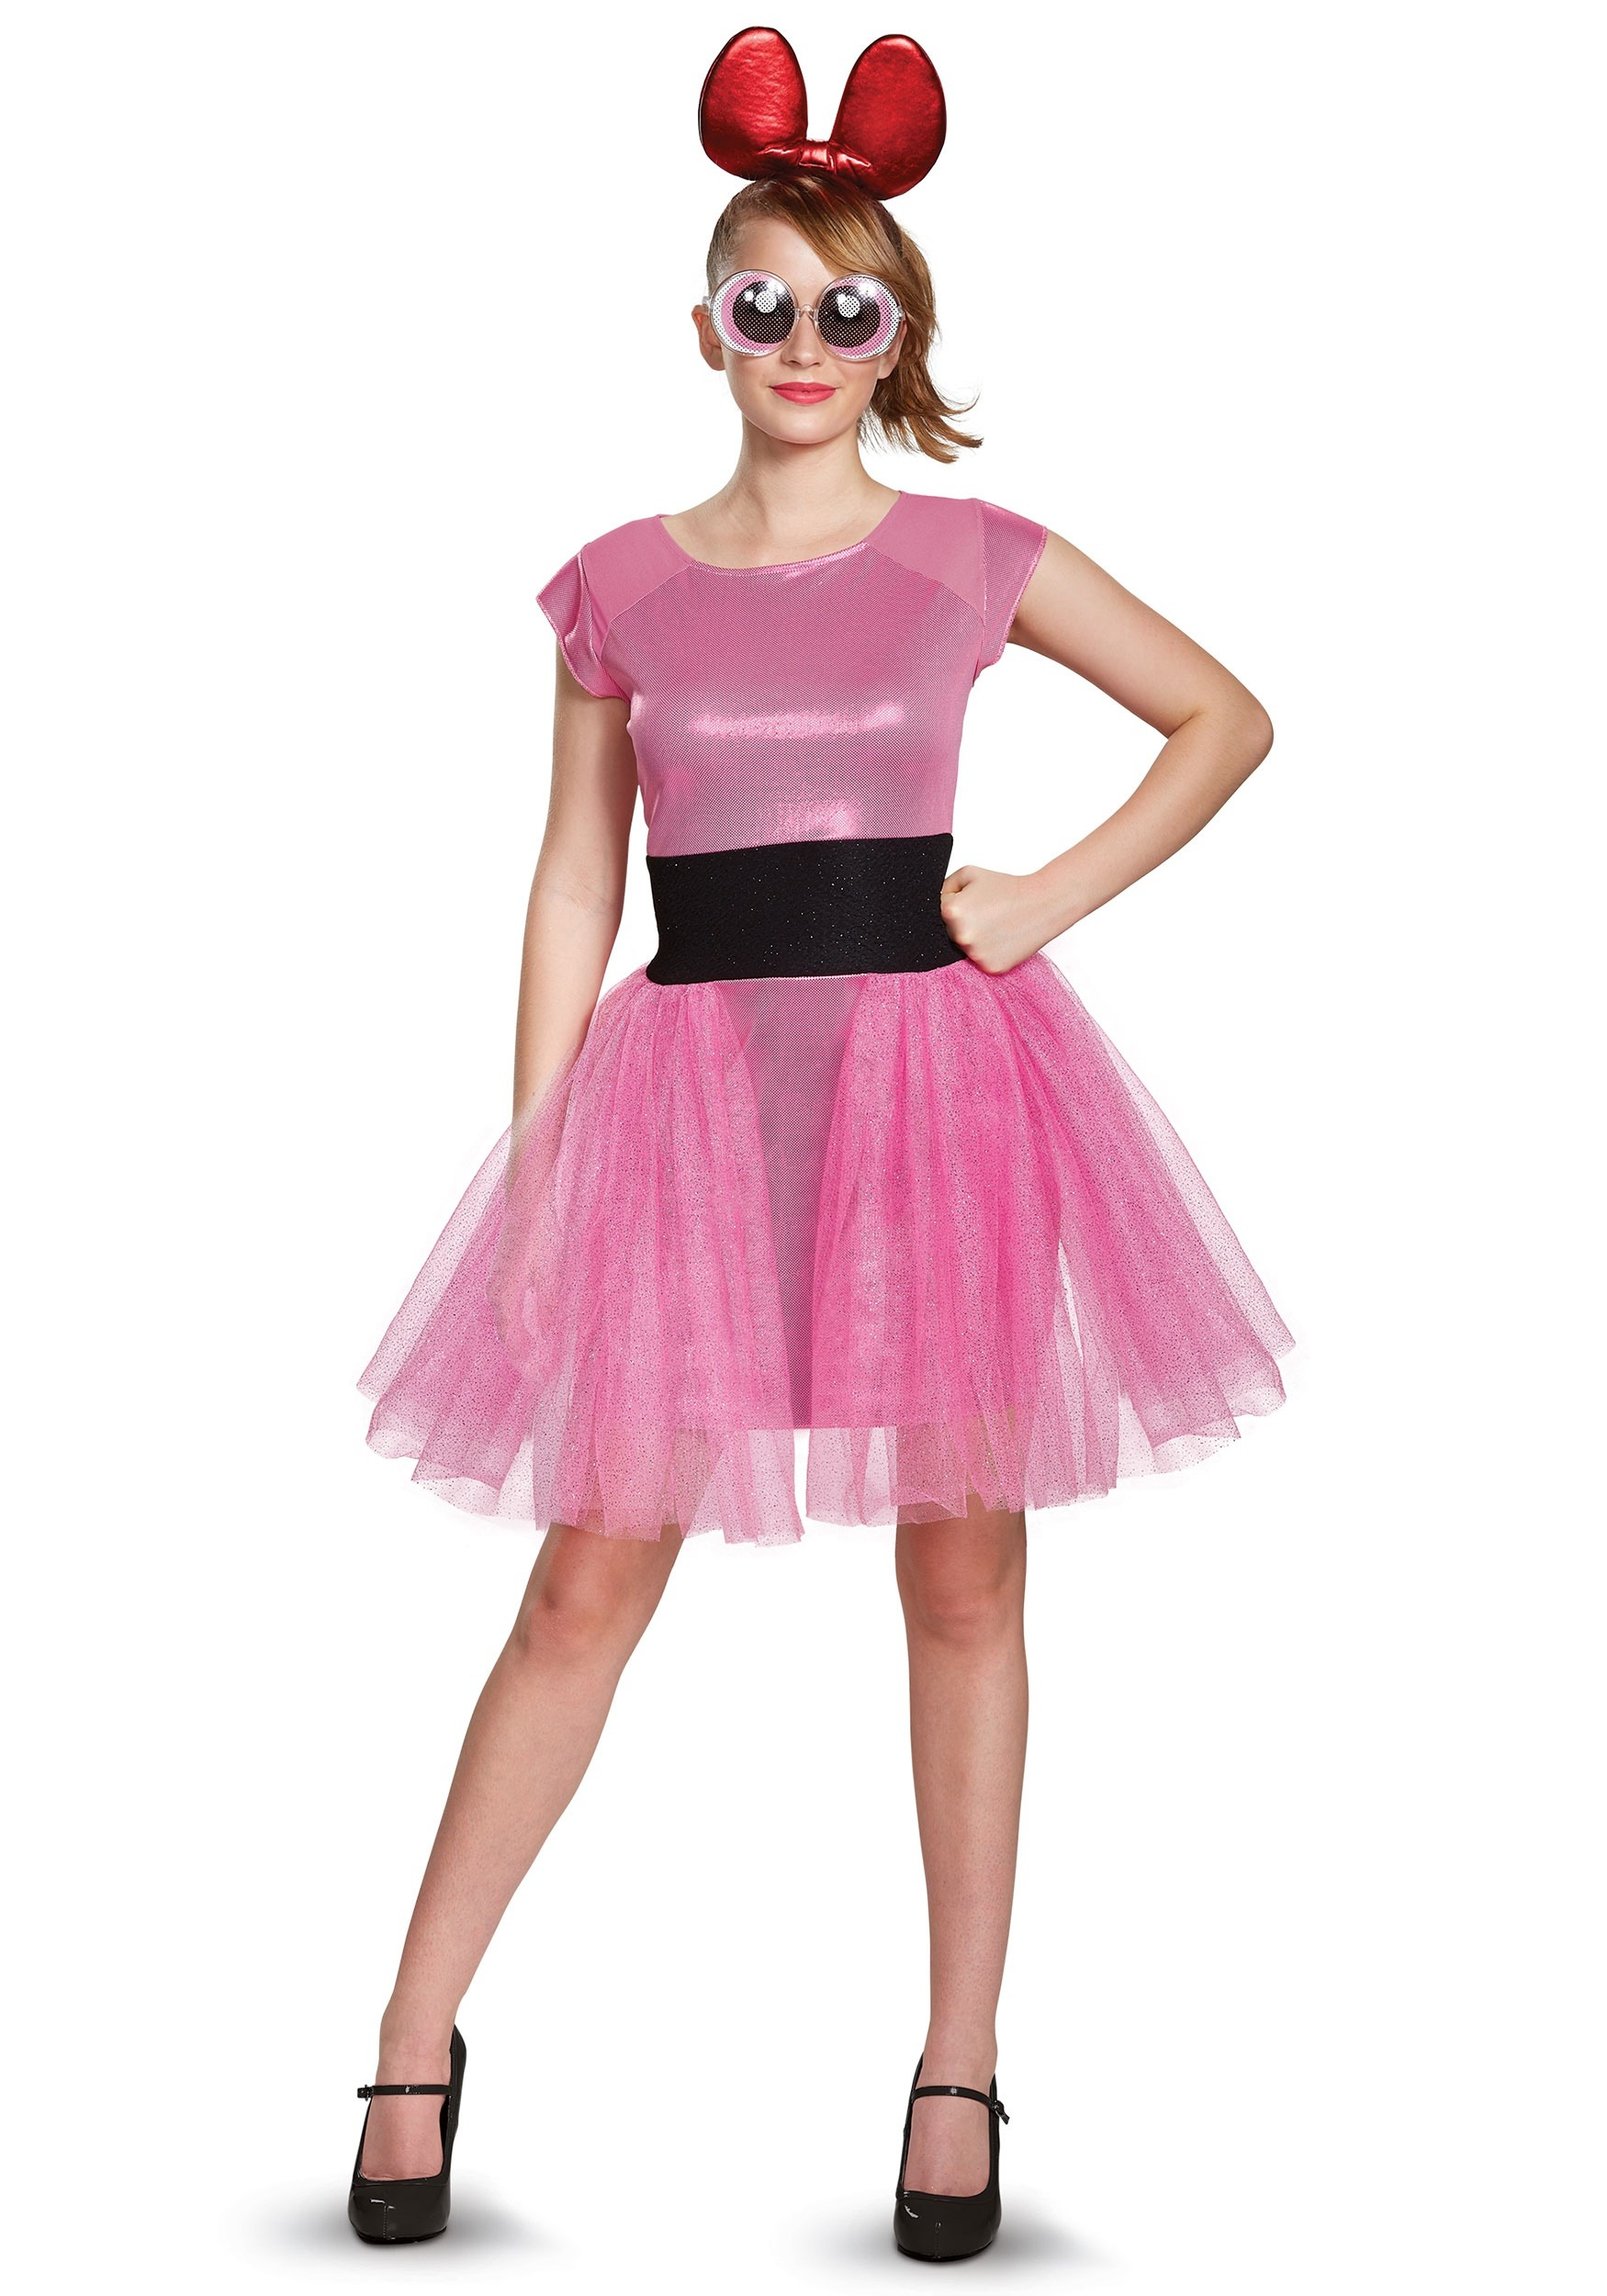 Powerpuff Girls Blossom Deluxe Adult Costume  sc 1 st  Halloween Costumes : powerpuff girls costumes for adults  - Germanpascual.Com